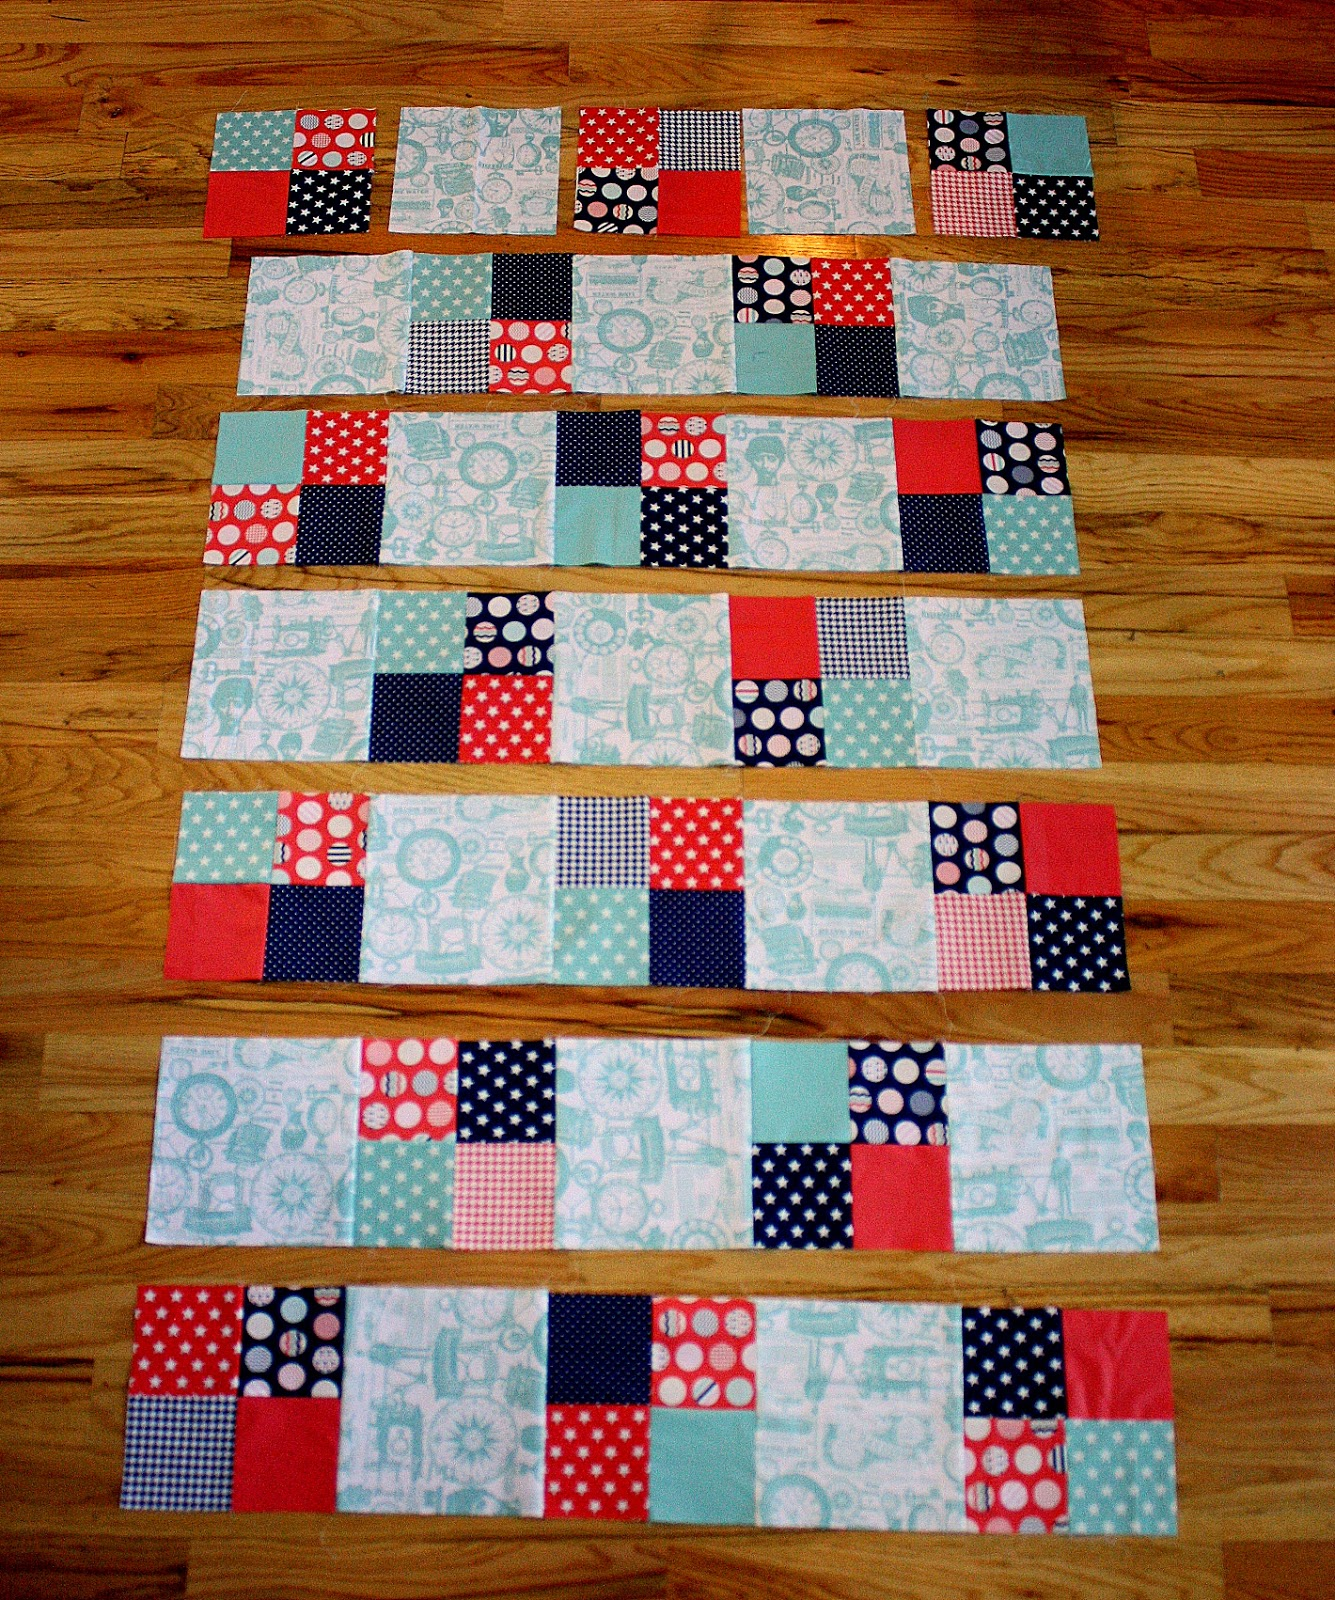 Fast four patch quilt tutorial diary of a quilter a quilt blog sew squares into rows pressing seams toward the 8 12 square blocks this will create nesting seams when you go to sew the rows together and make the jeuxipadfo Gallery